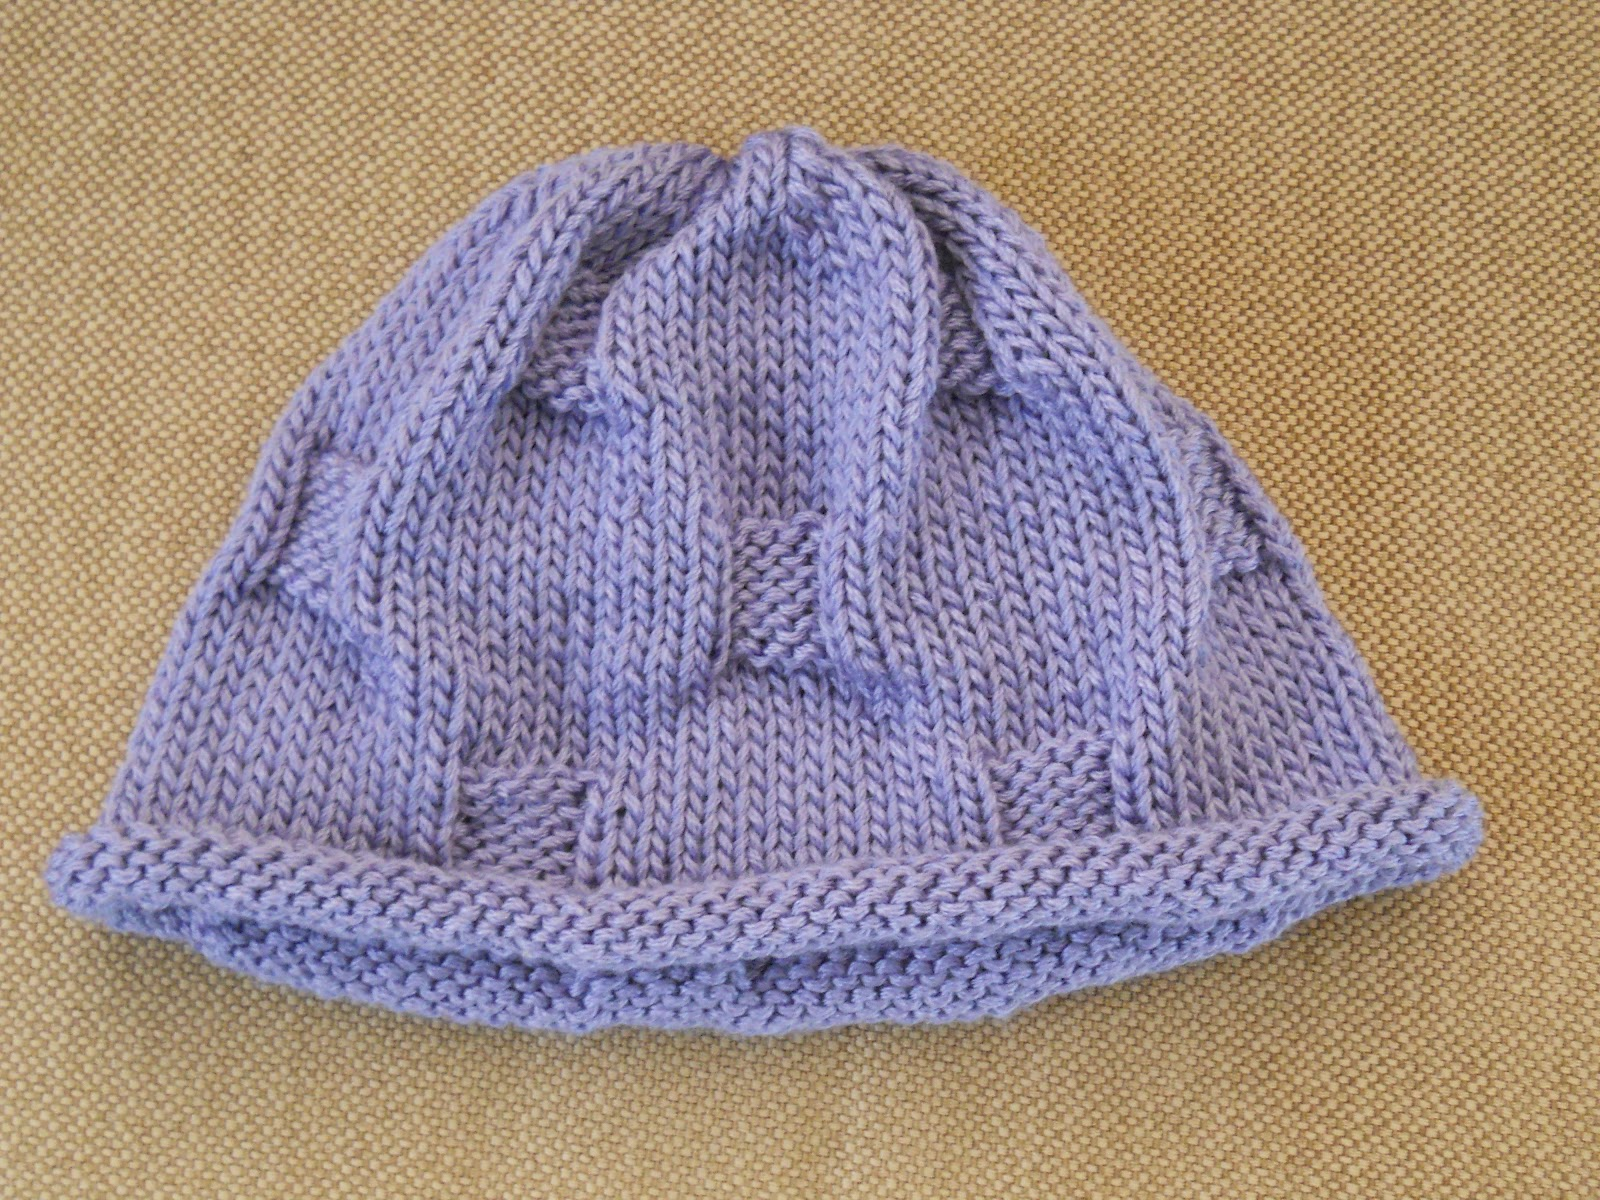 Knitting with Schnapps: Stepping Stones Cap